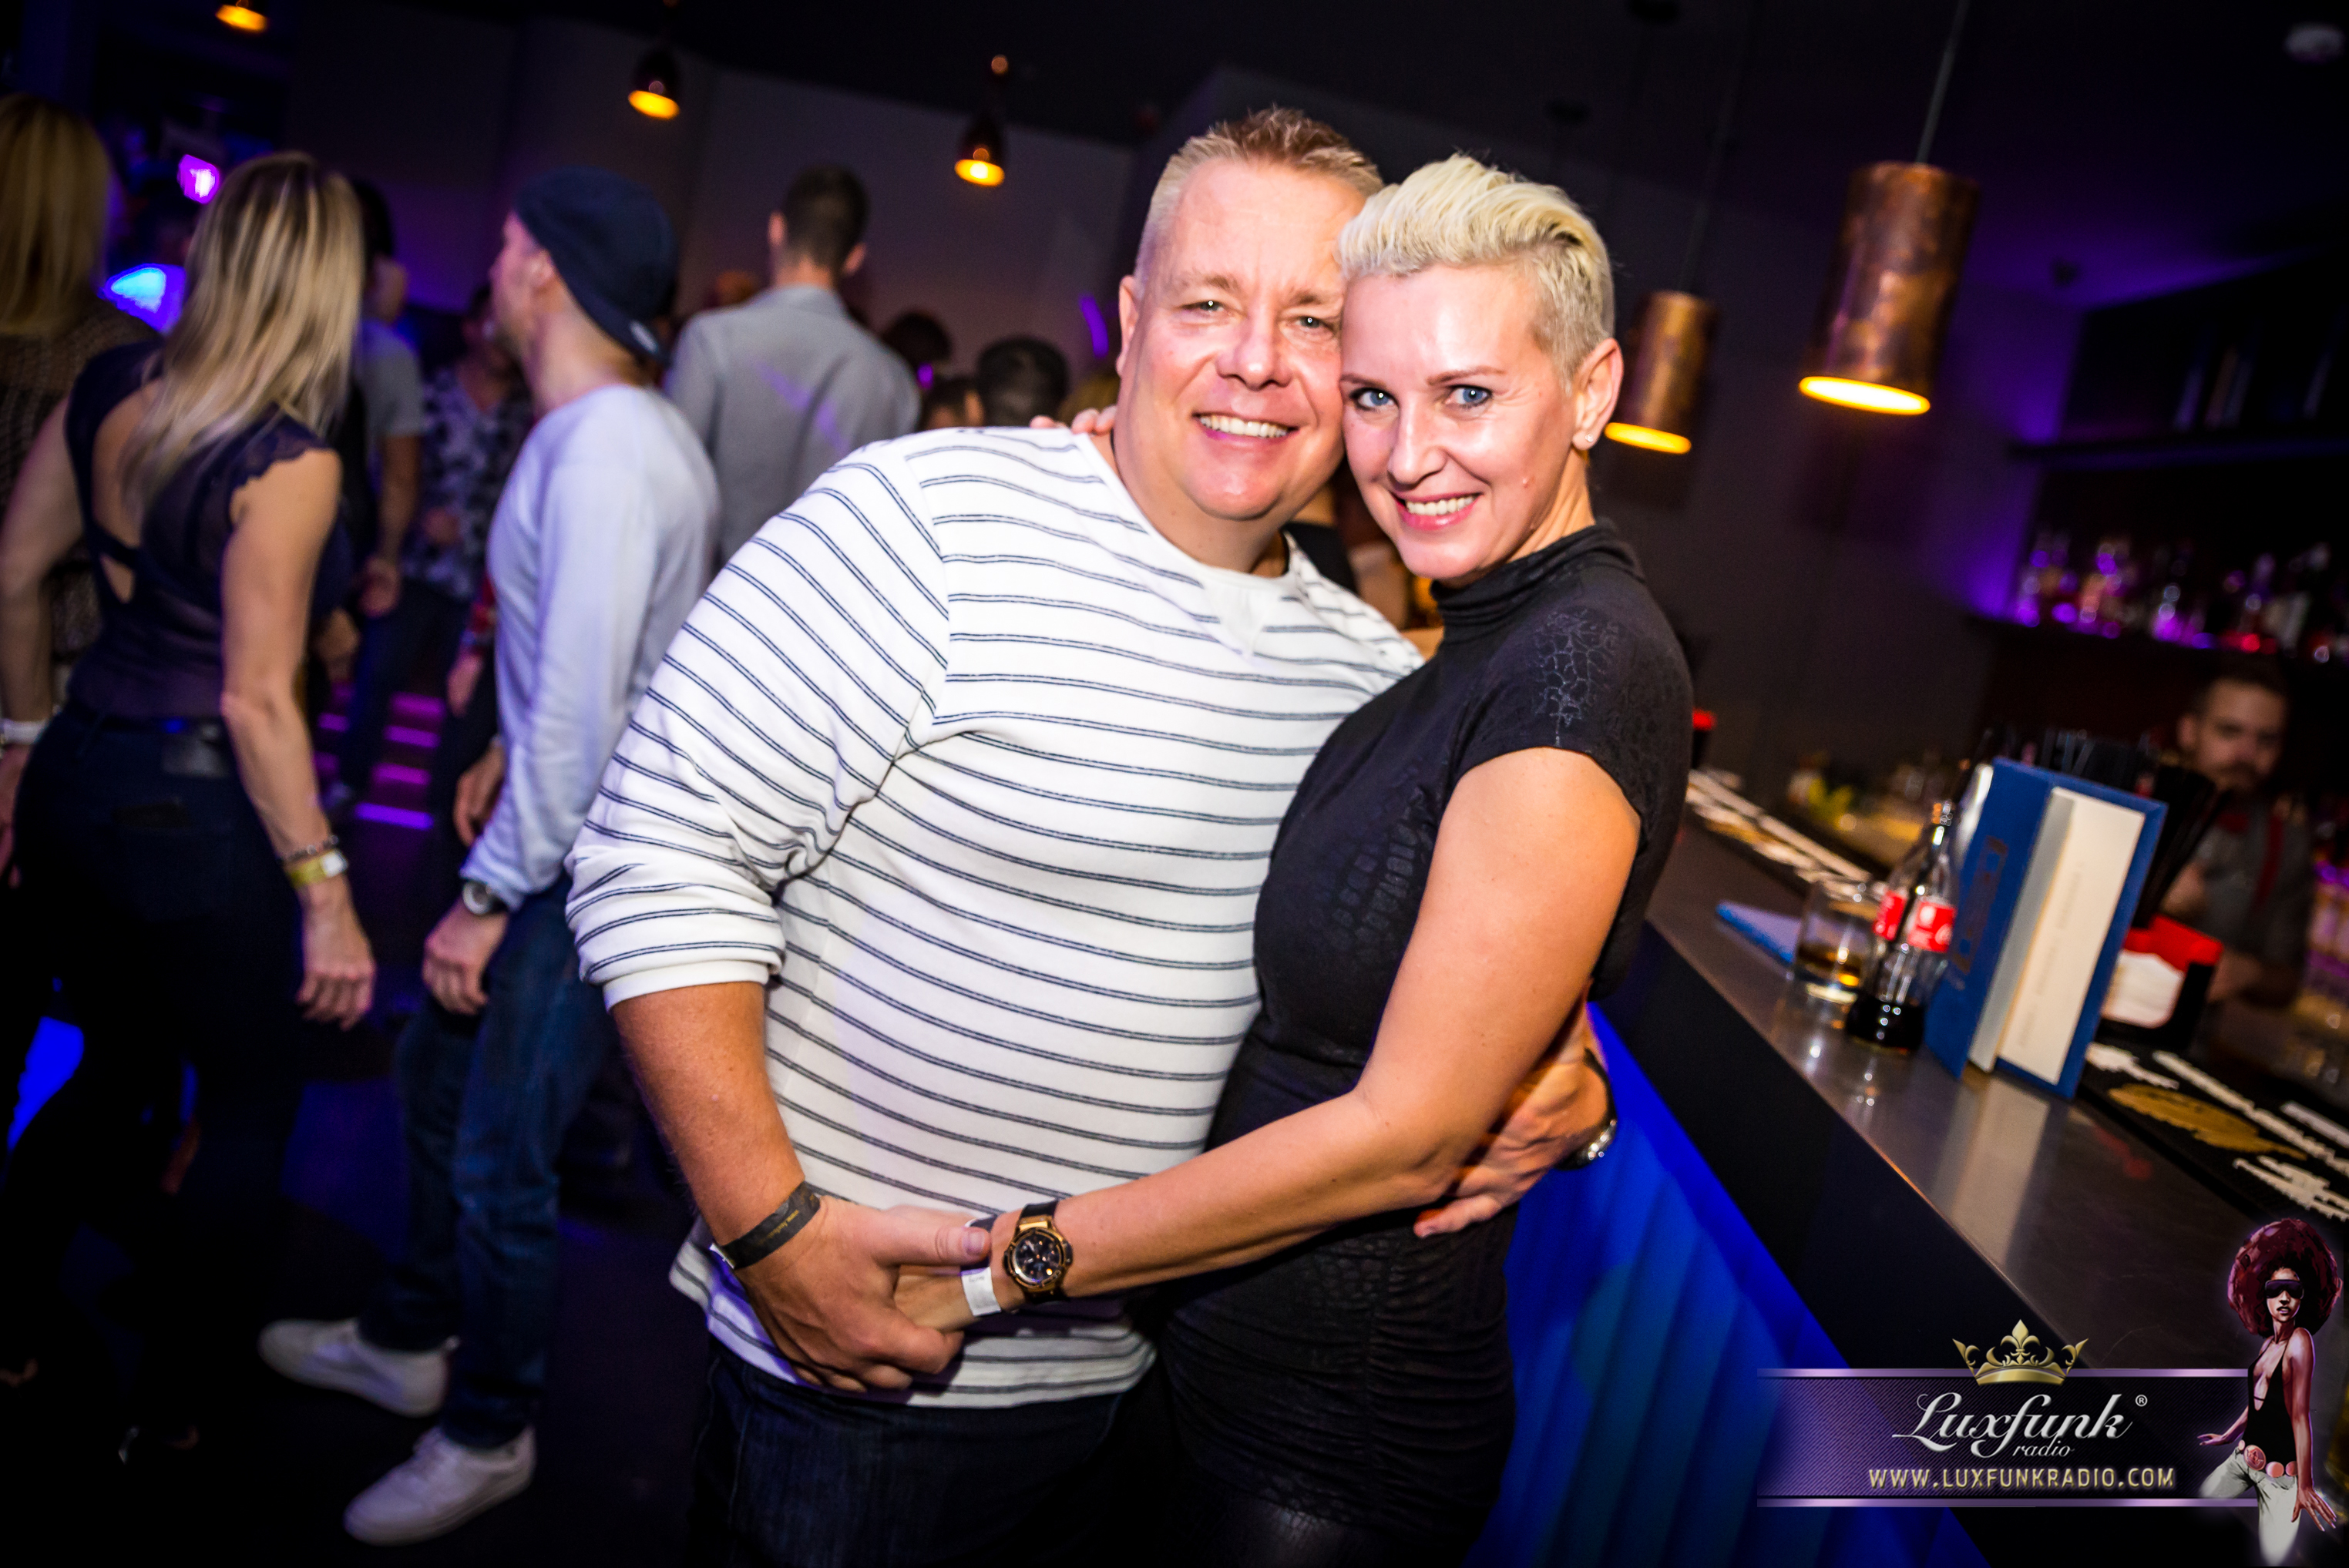 luxfunk-radio-funky-party-20191108-lock-budapest-1292